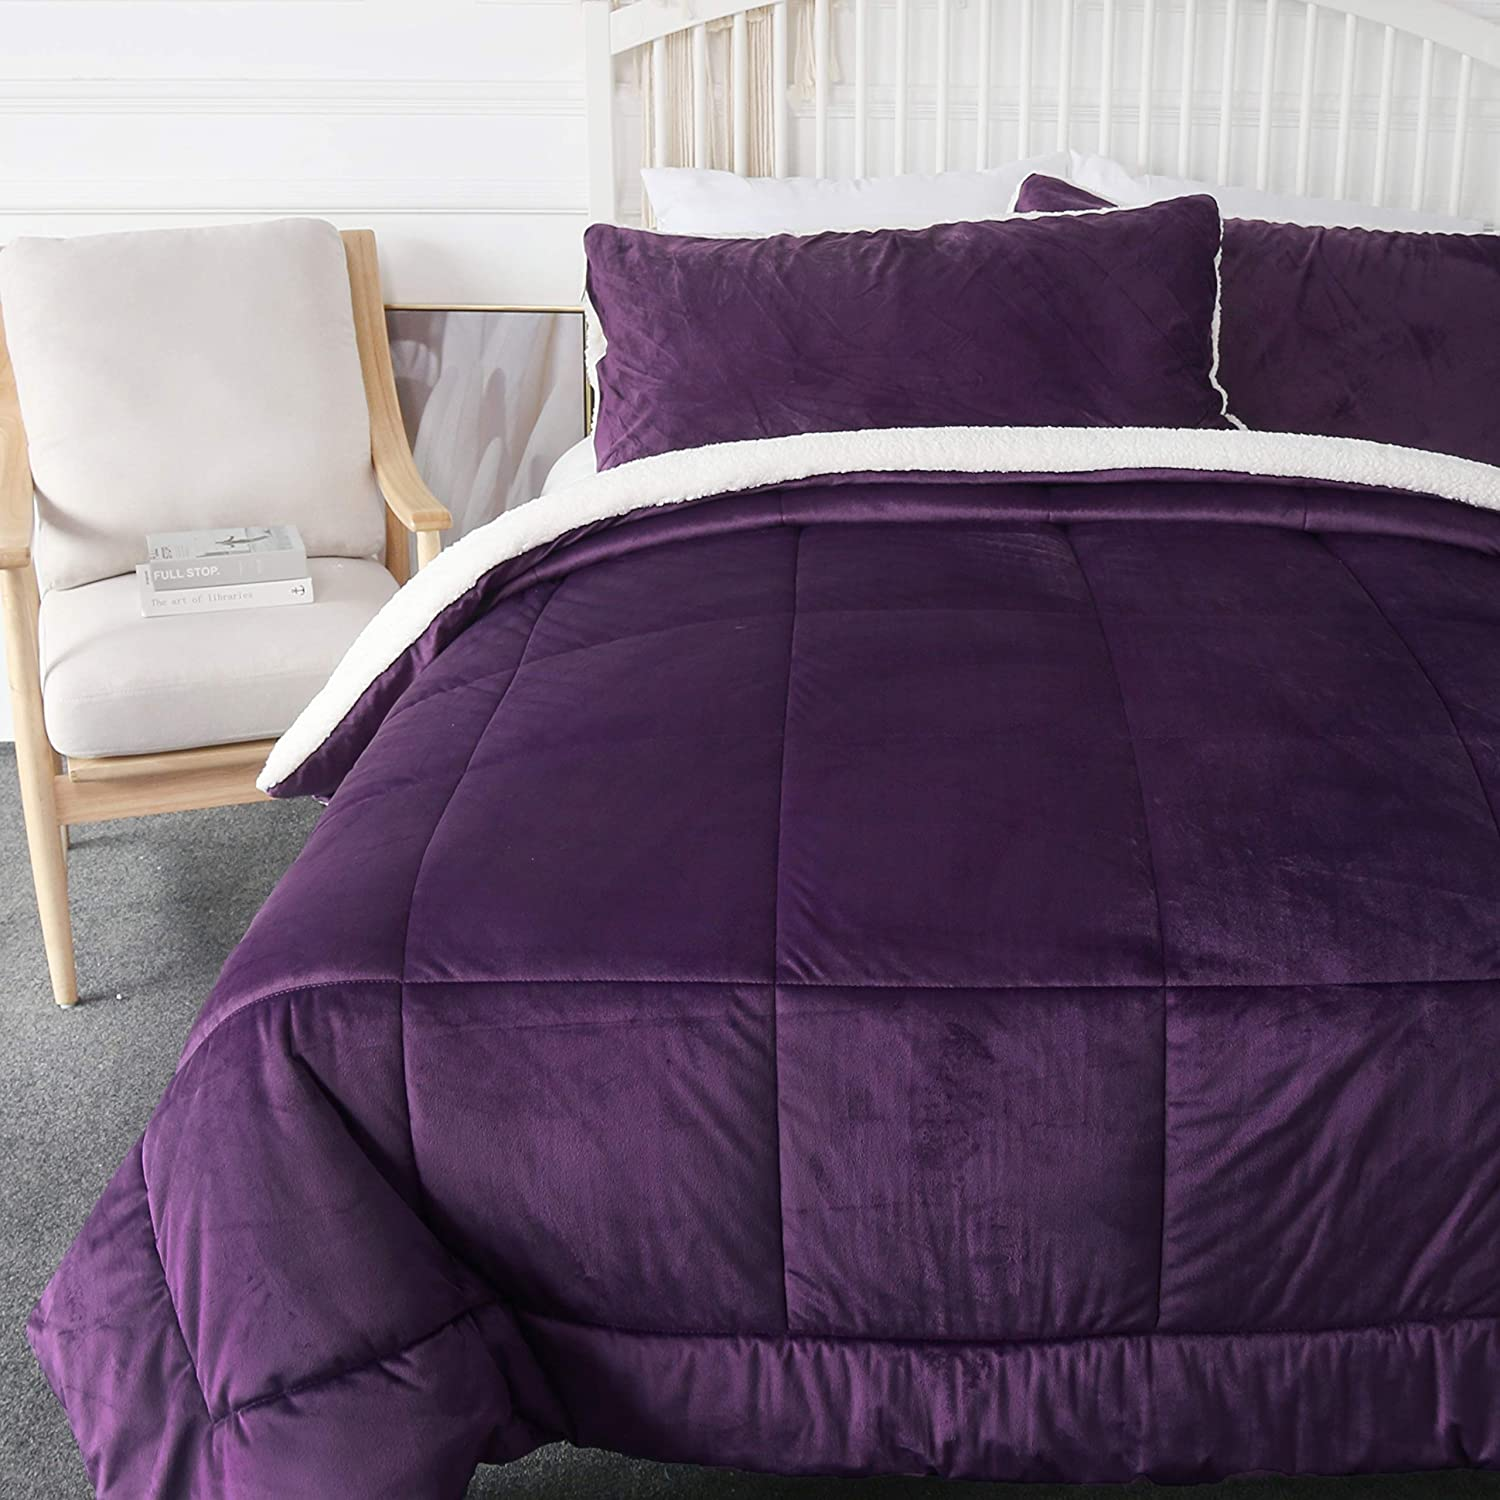 Micro Mink and Sherpa Comforter included 2 Pillowcase Reversible Comforter Set